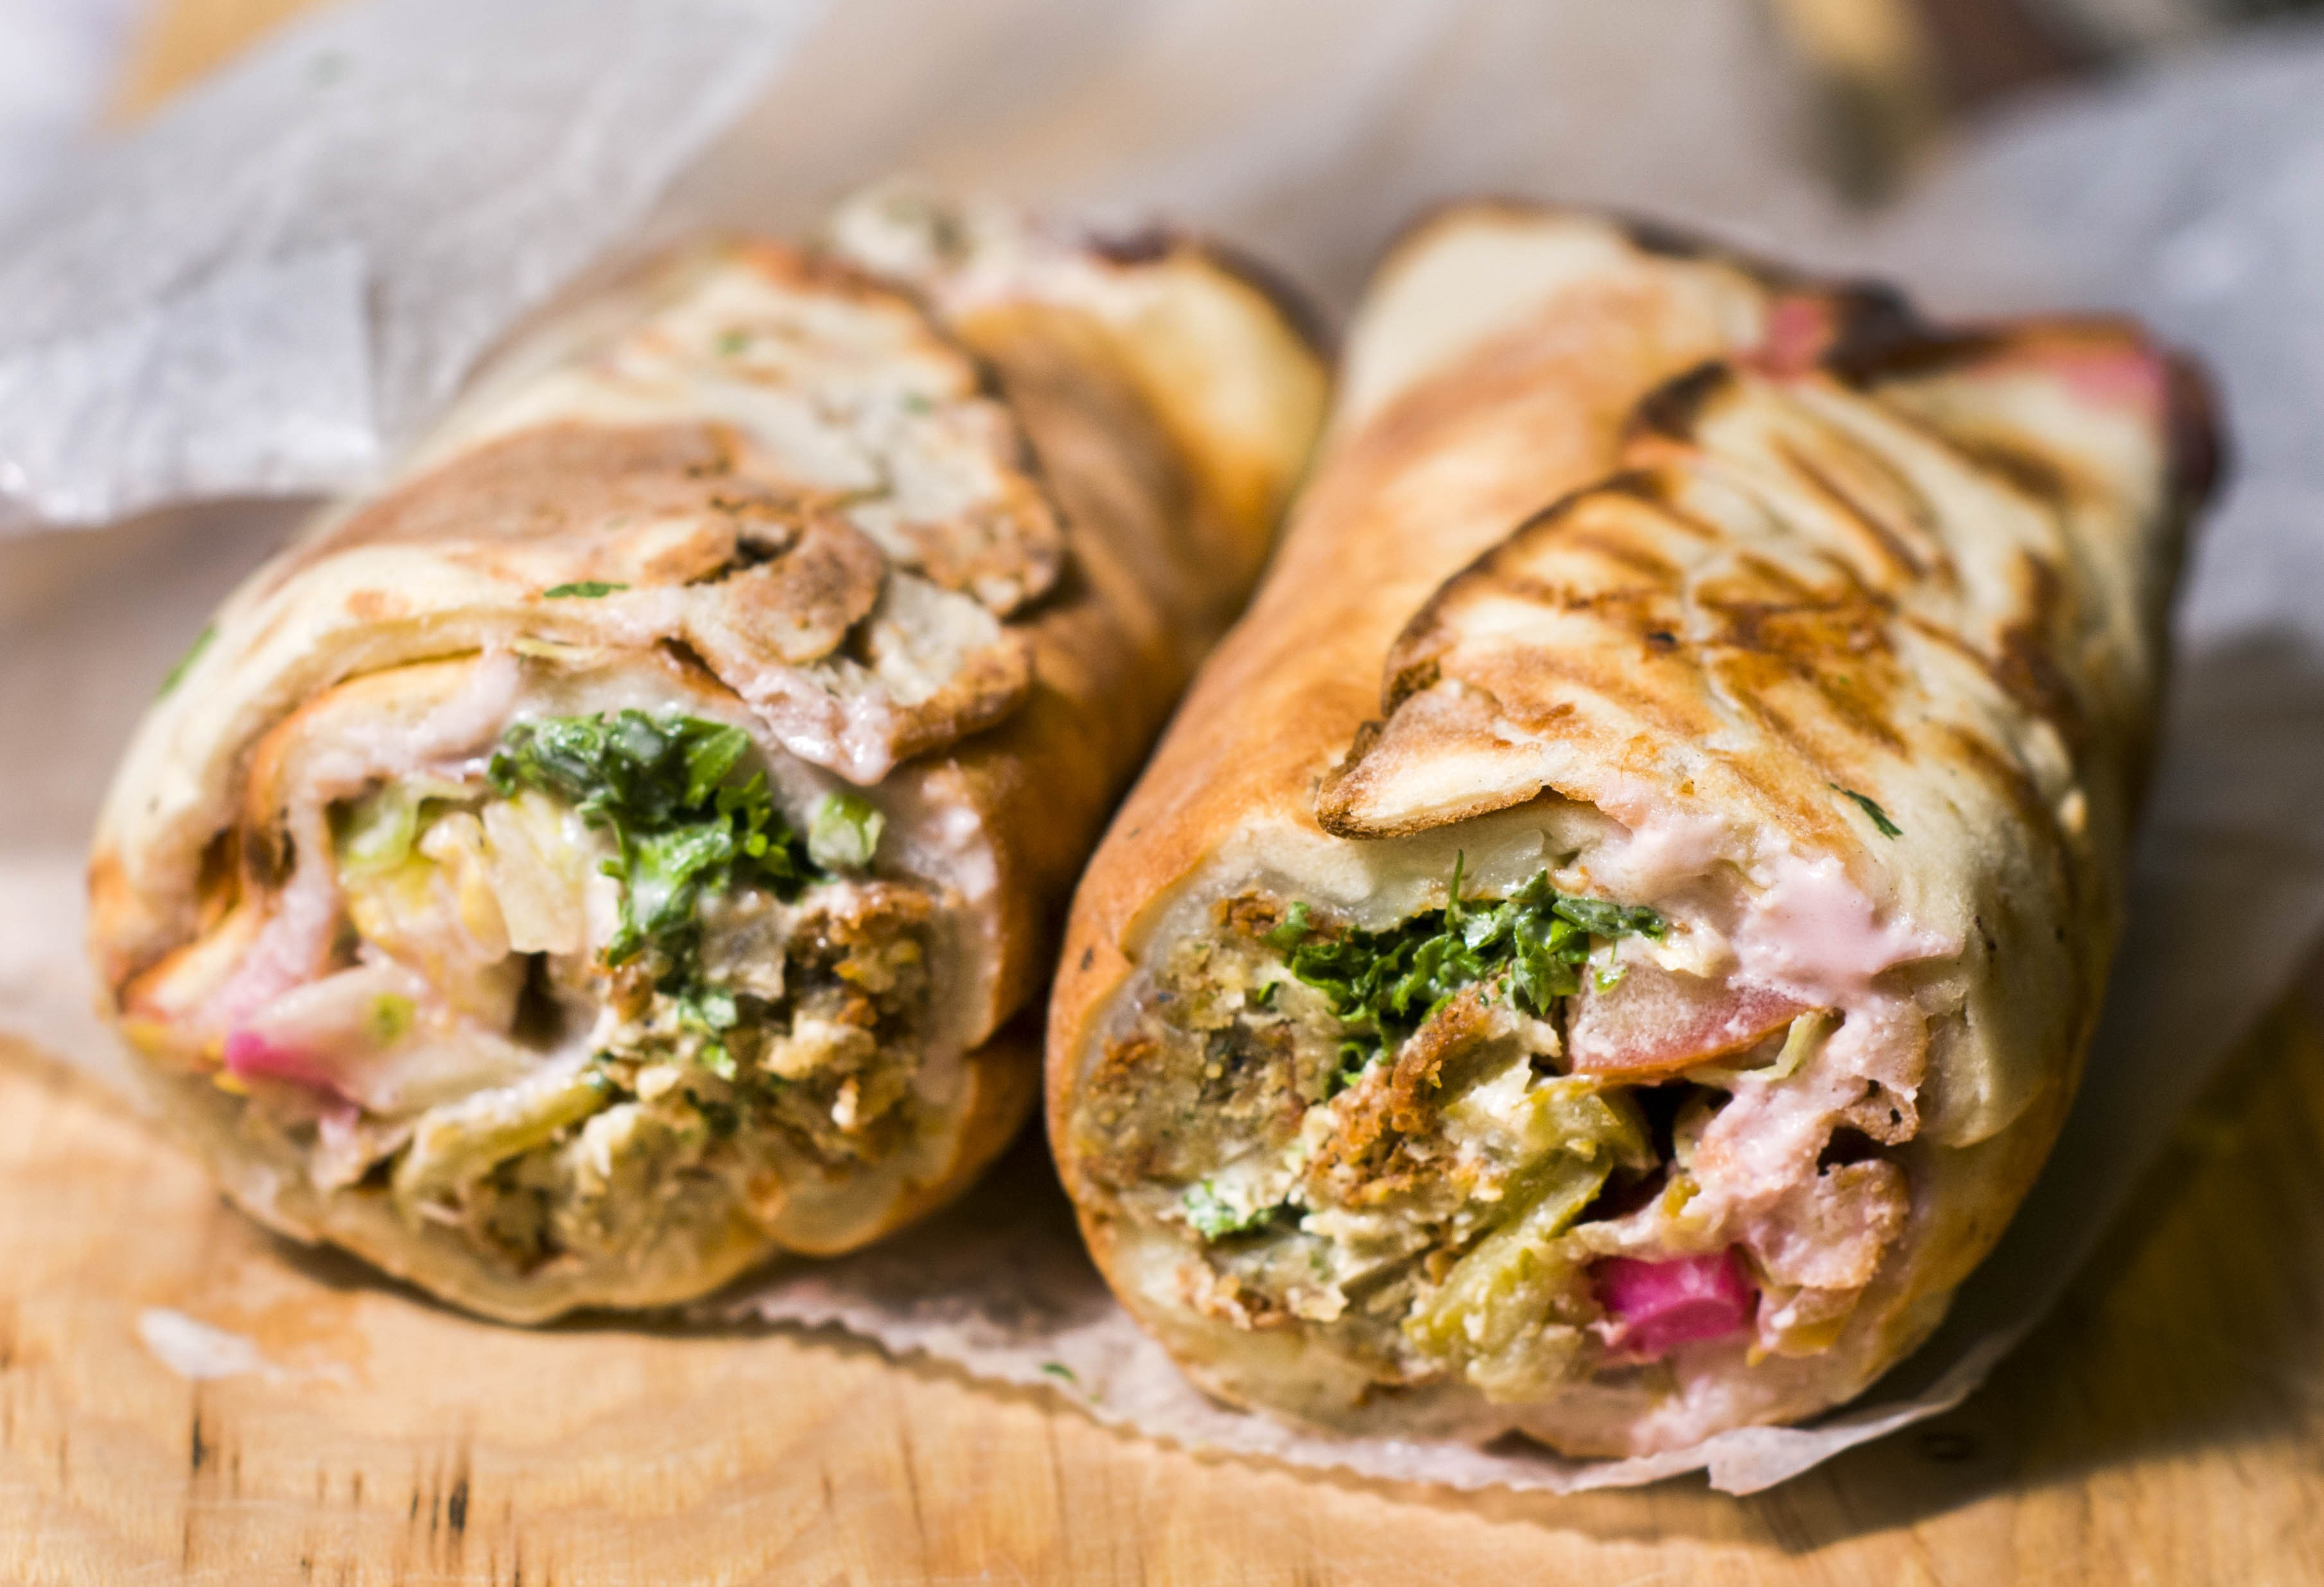 Lebanese restaurant King's reinvents the shawarma in